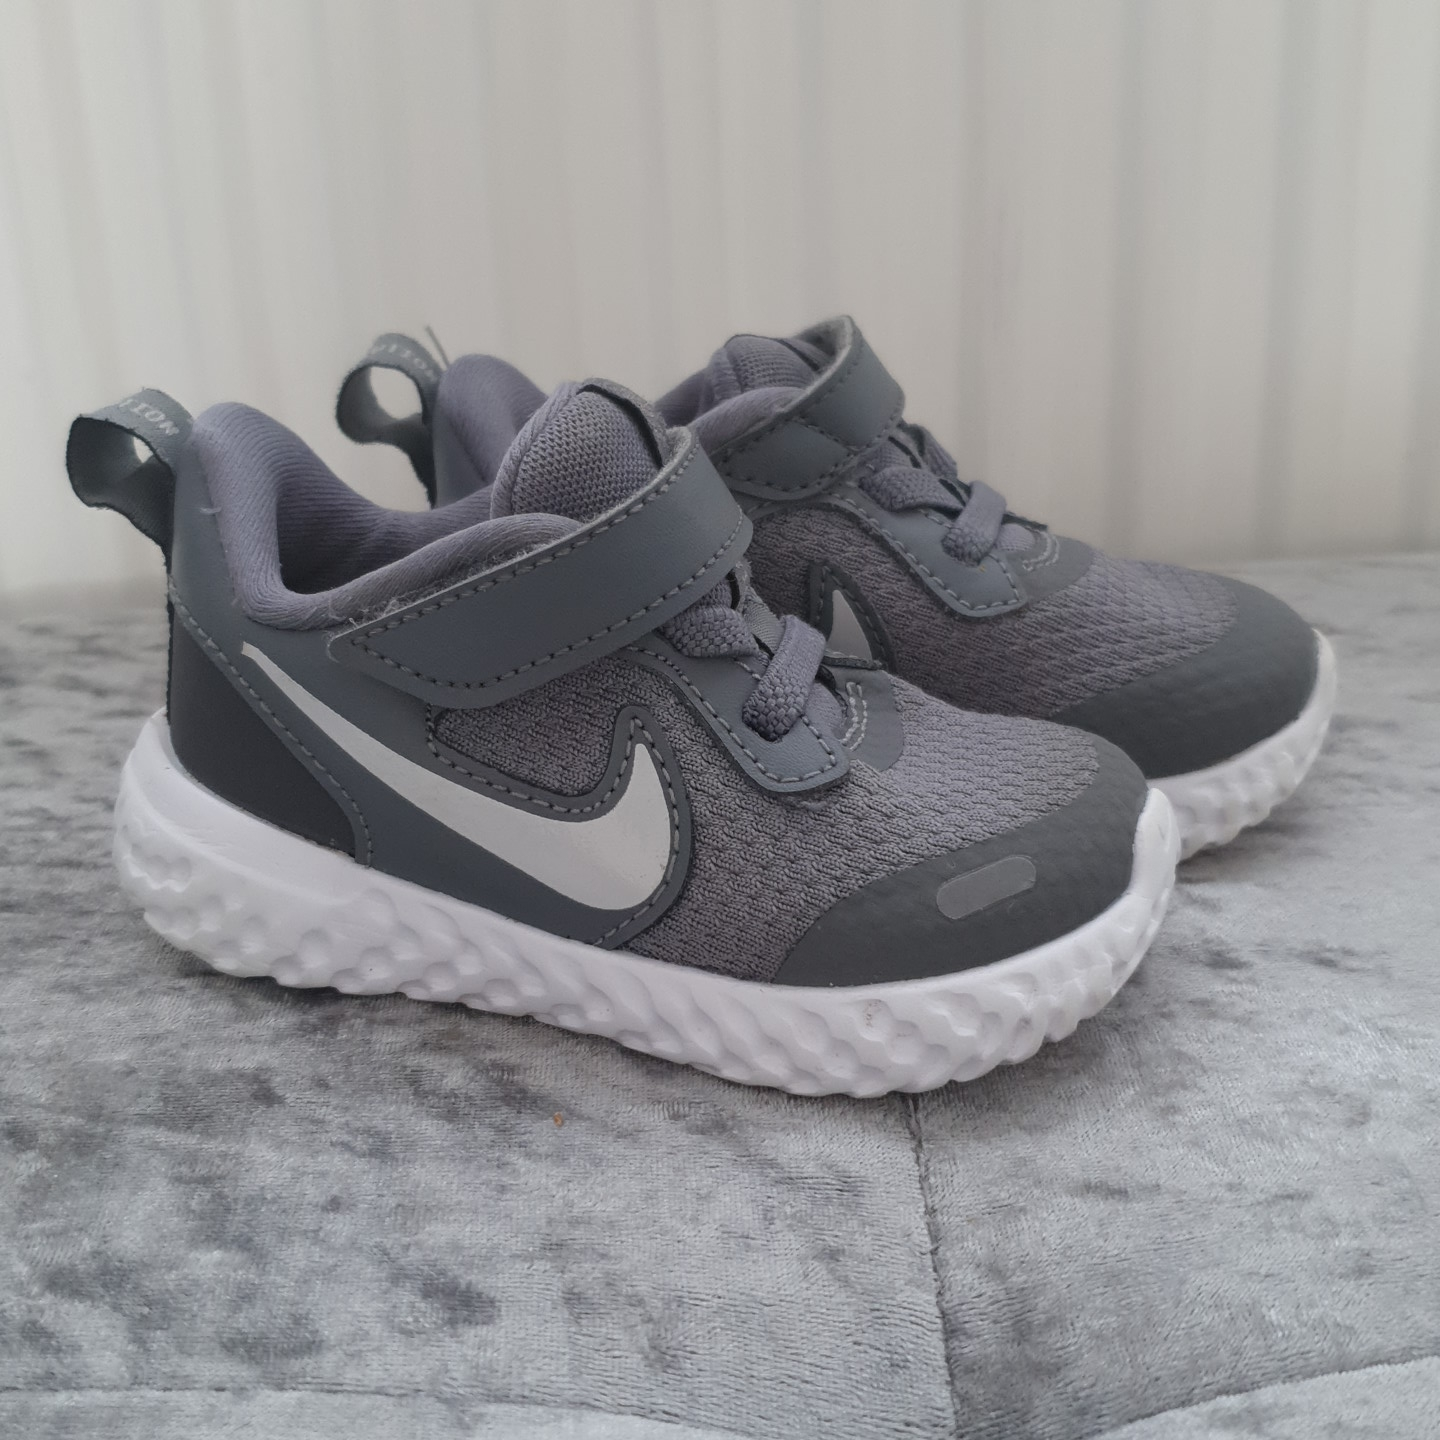 Infant nike trainers uk size 4.5. Only